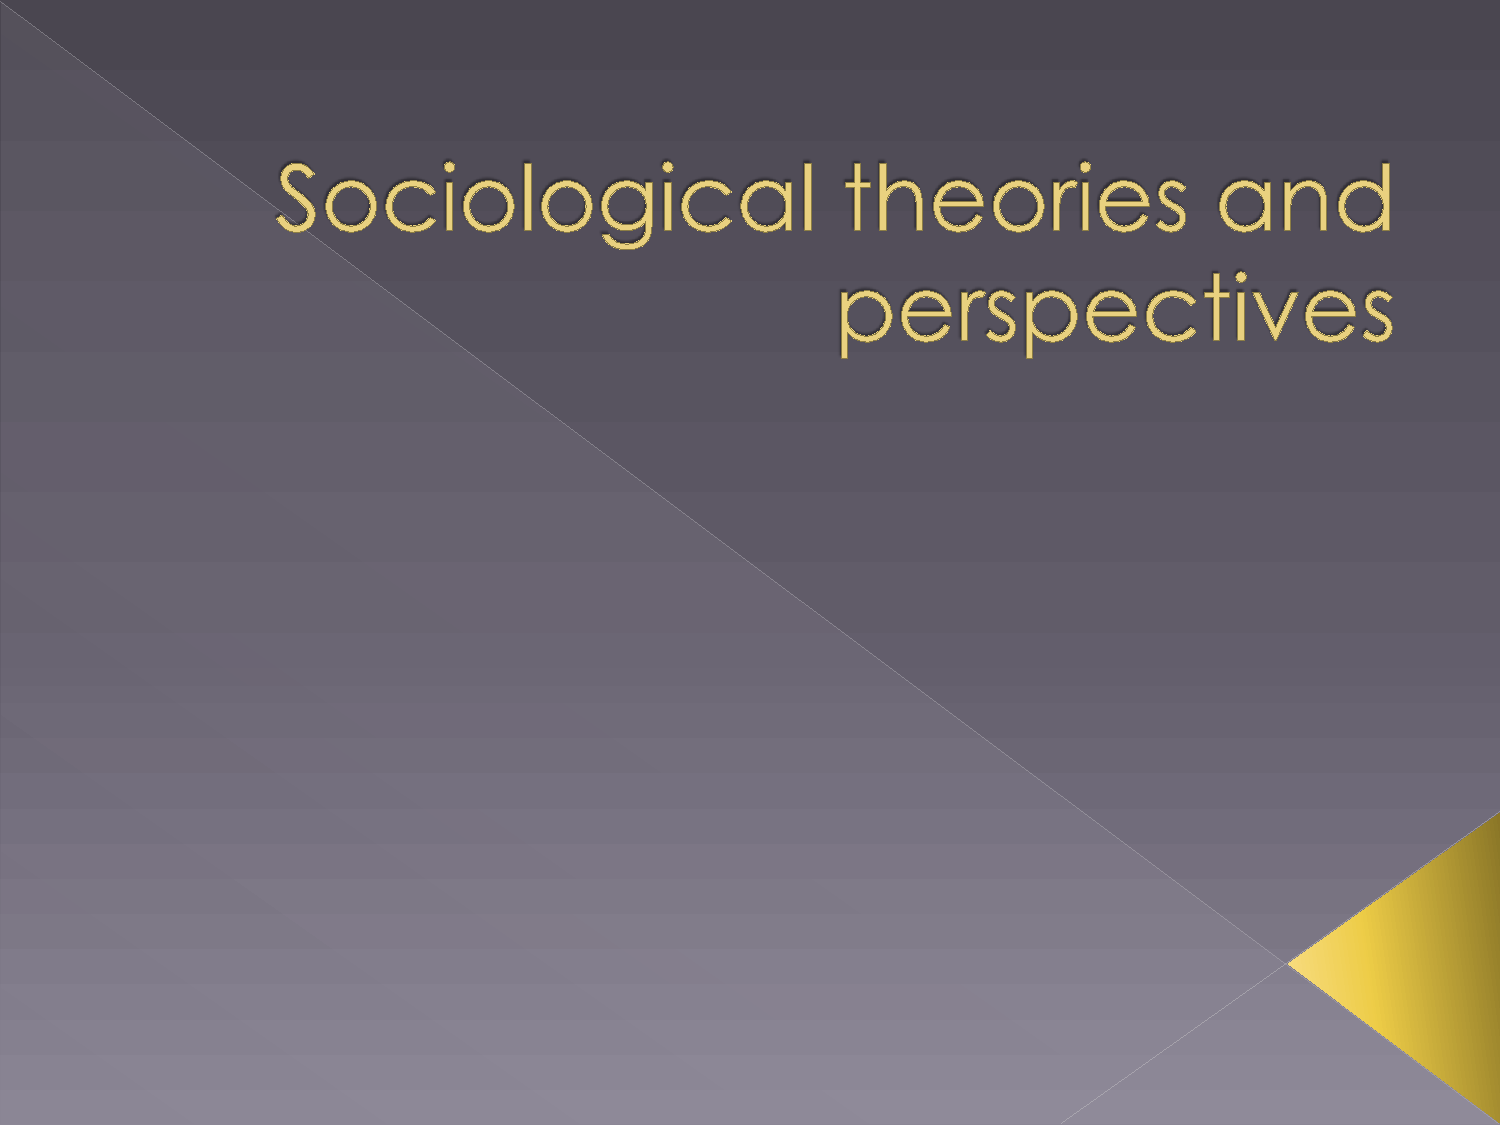 the sociological aspect of an institution How sociological theories impact the family institution introduction sociological theories are important in understanding how the society operates in addition, the theories help one understand how people in the society relate with each other the theories have helped understand various social issues in the society and made it easy to develop.